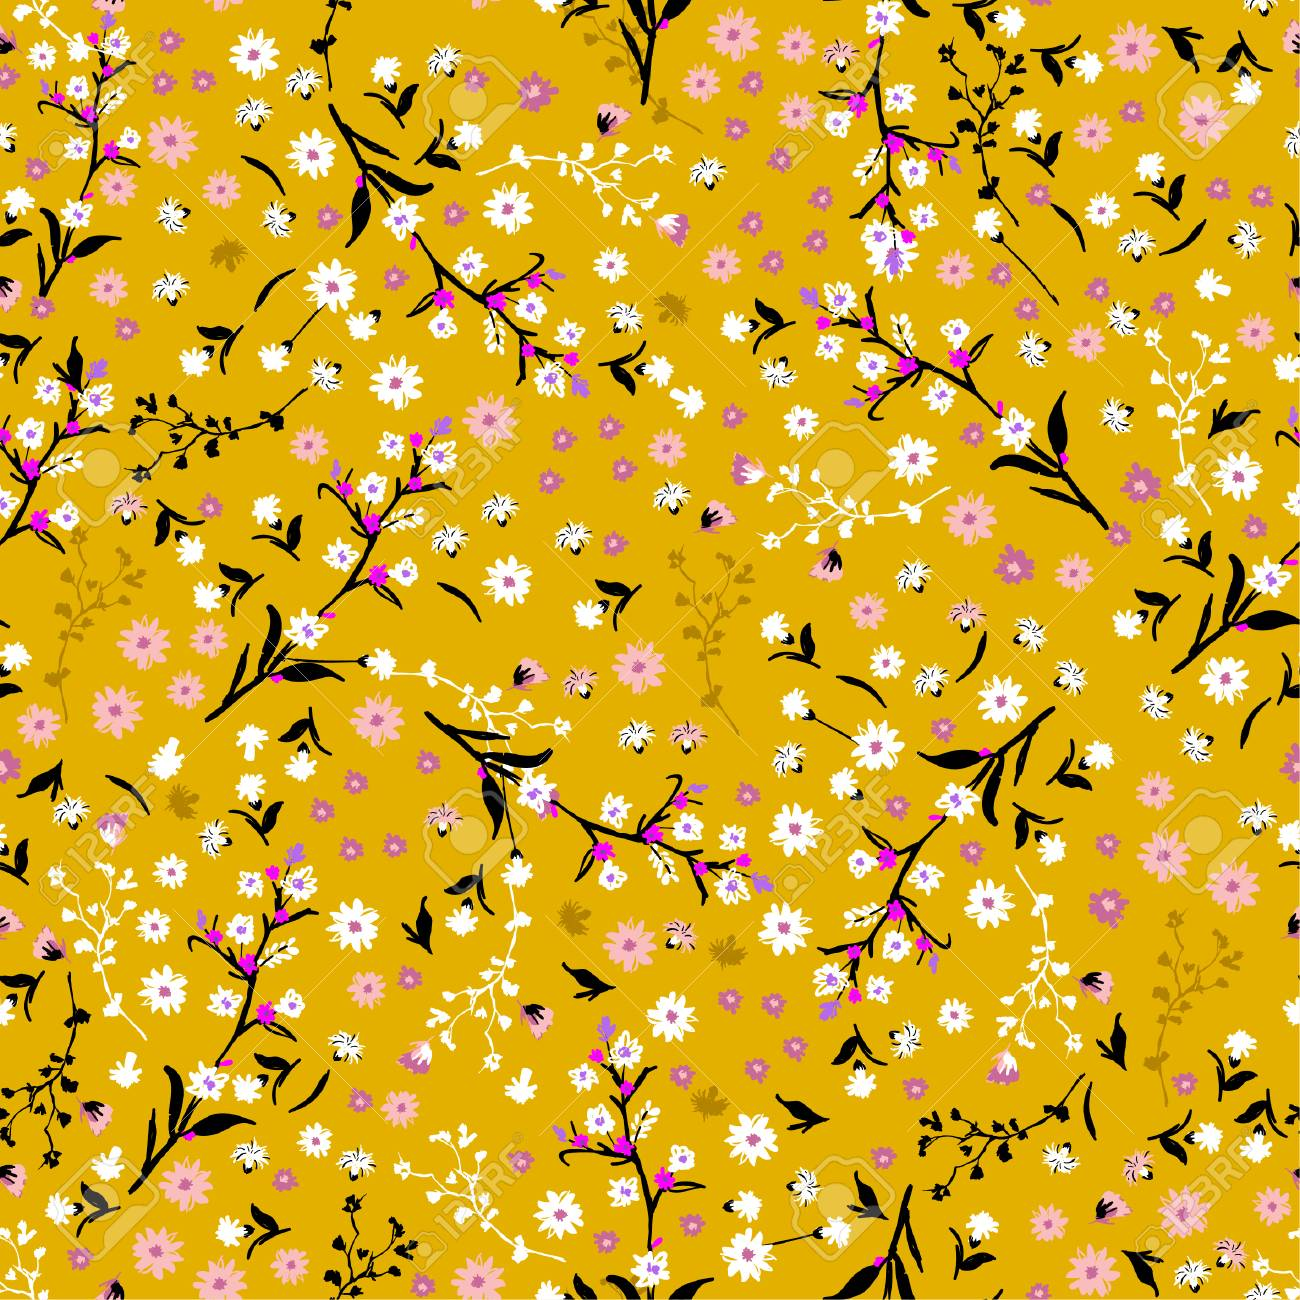 Floral pattern. Pretty flowers on vintage yellow background in liberty style. Printing with small white and pink flowers. Ditsy print. Seamless vector texture. Spring bouquet. - 94651376